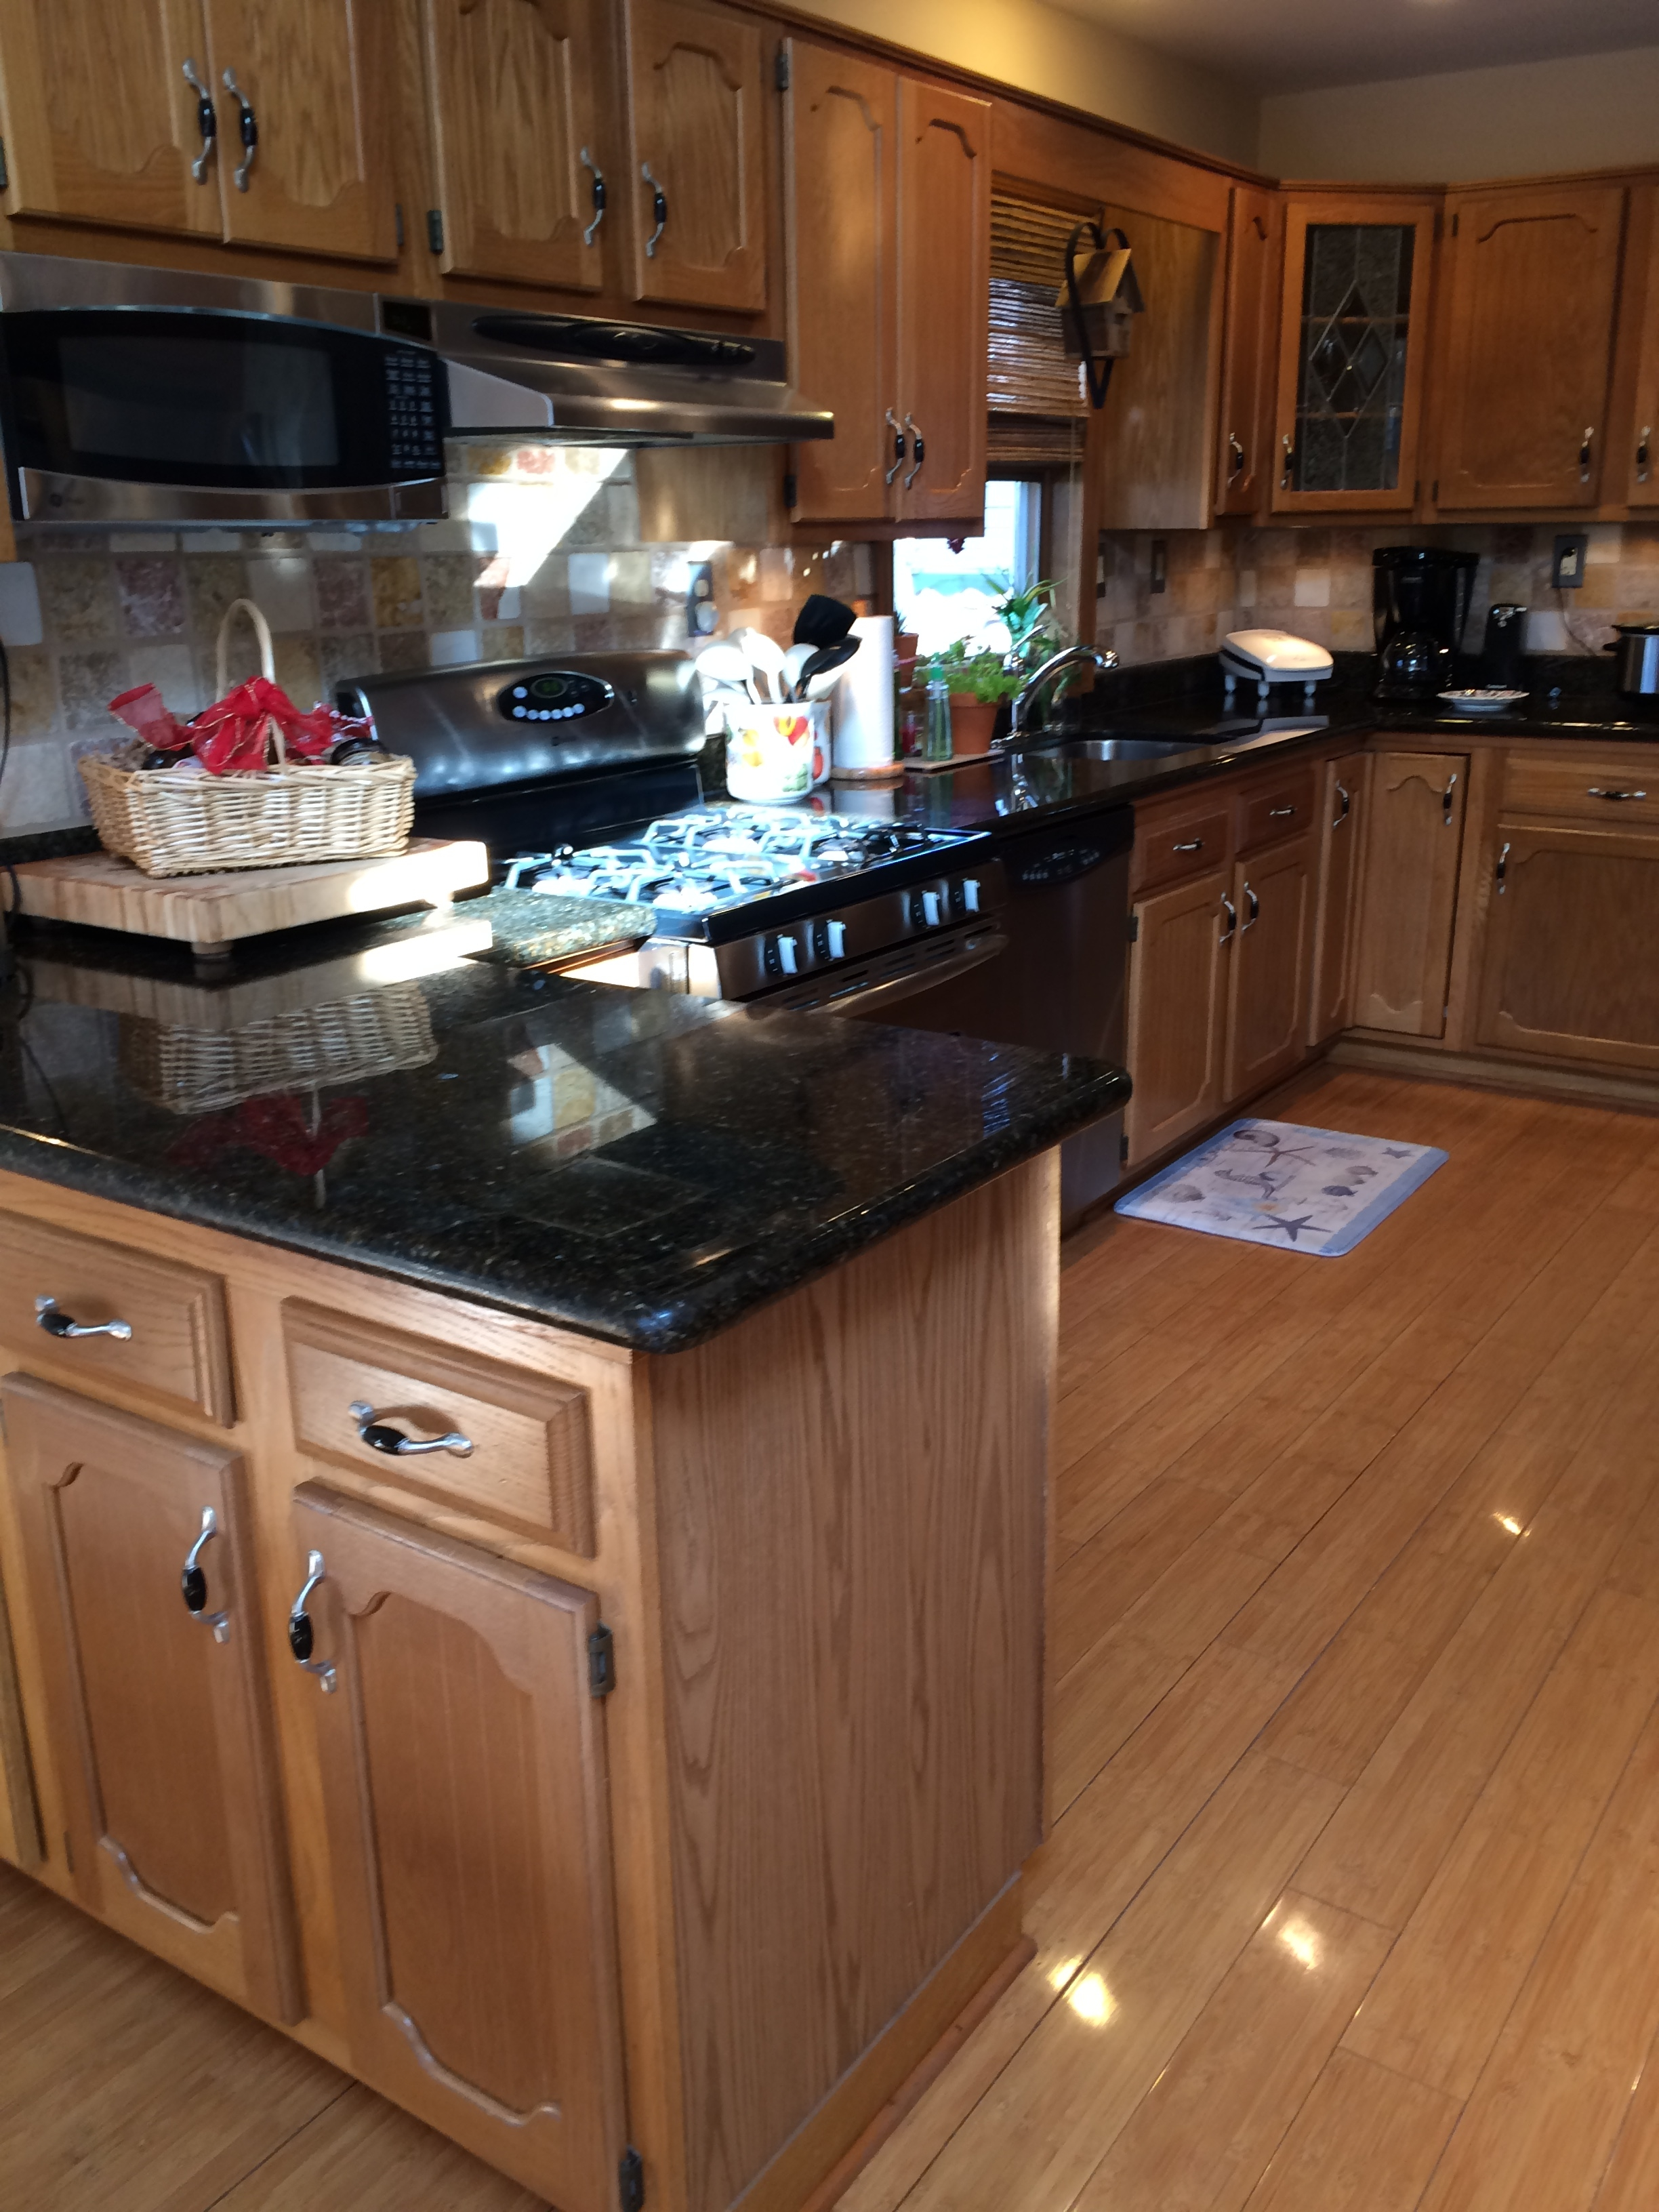 I want to sell my home in nj coupons near me in clifton for Granite kitchen and bath clifton nj